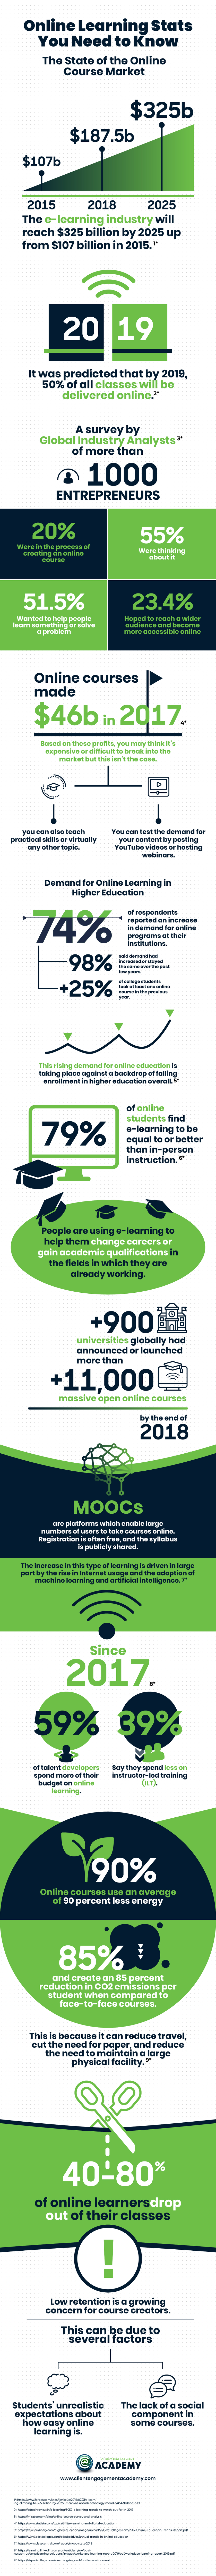 The Rapid Growth Of Online Education With The Stats To Prove It